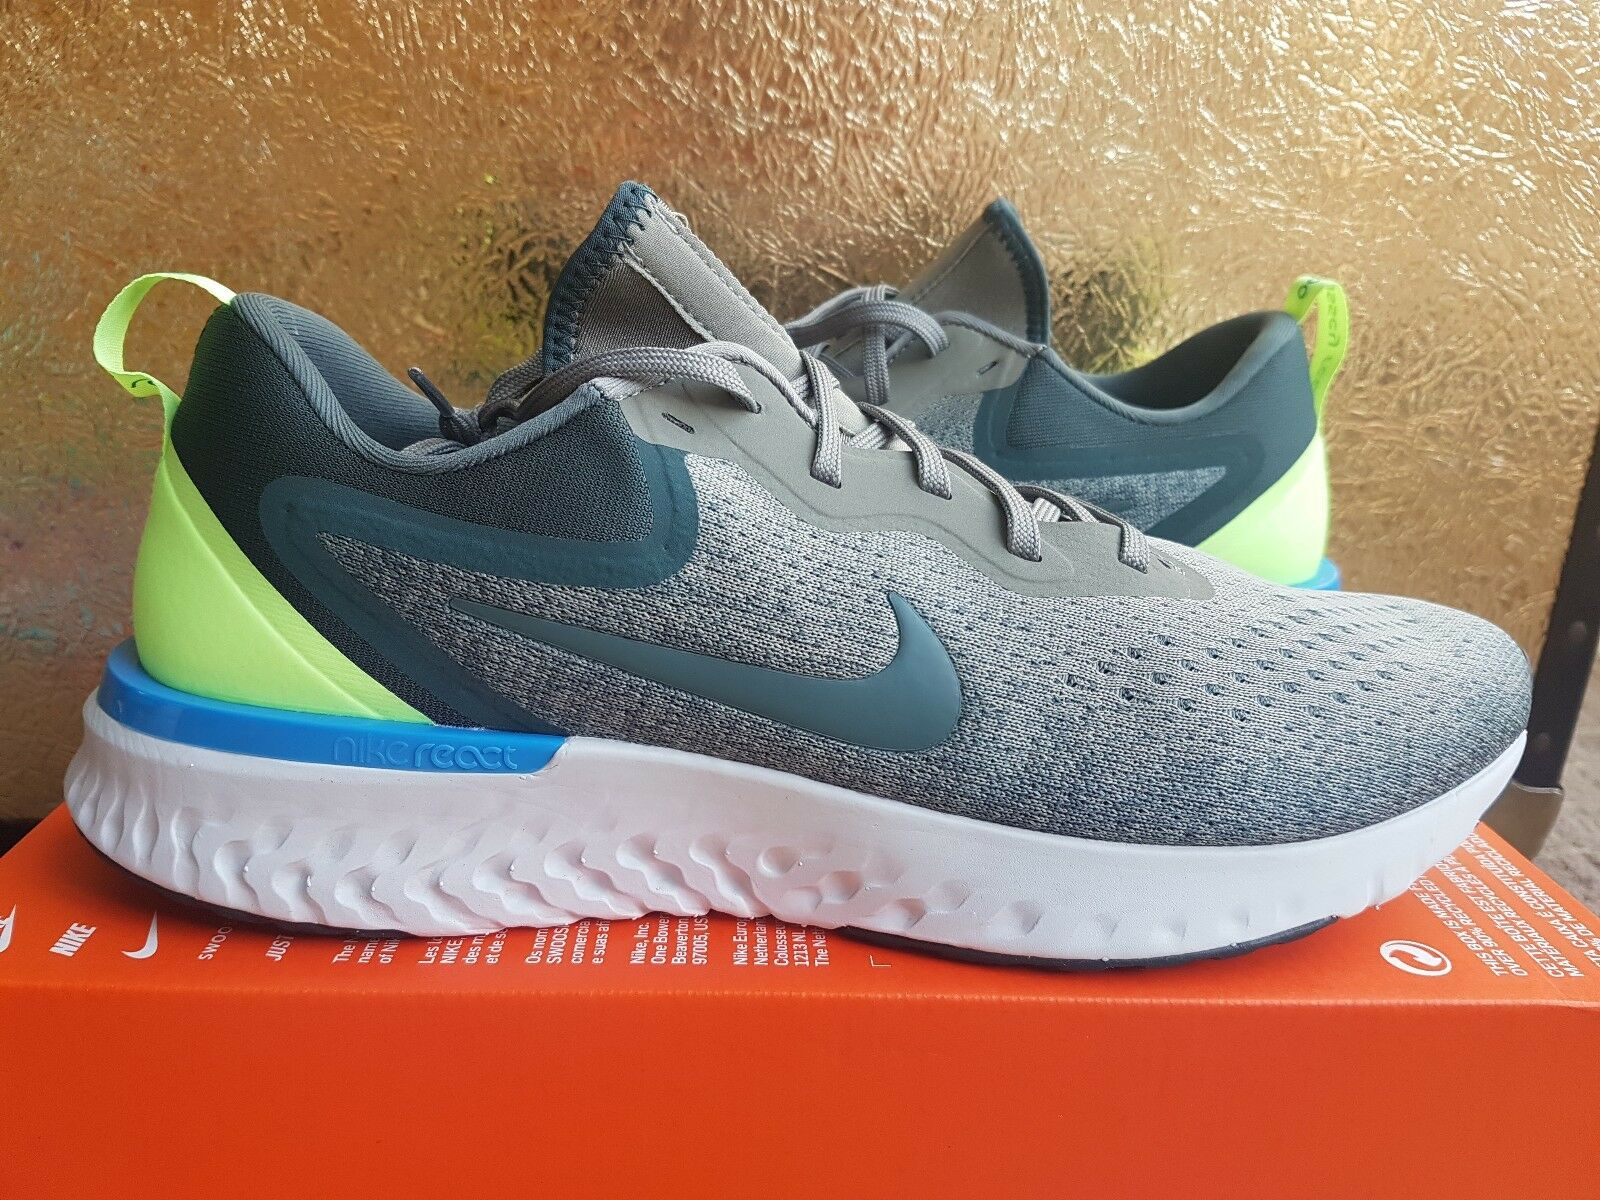 MENS NIKE ODYSSEY REACT SIZE 10.5 EUR 45.5 (AO9819 009) GREY  GREEN  blueE  VOLT